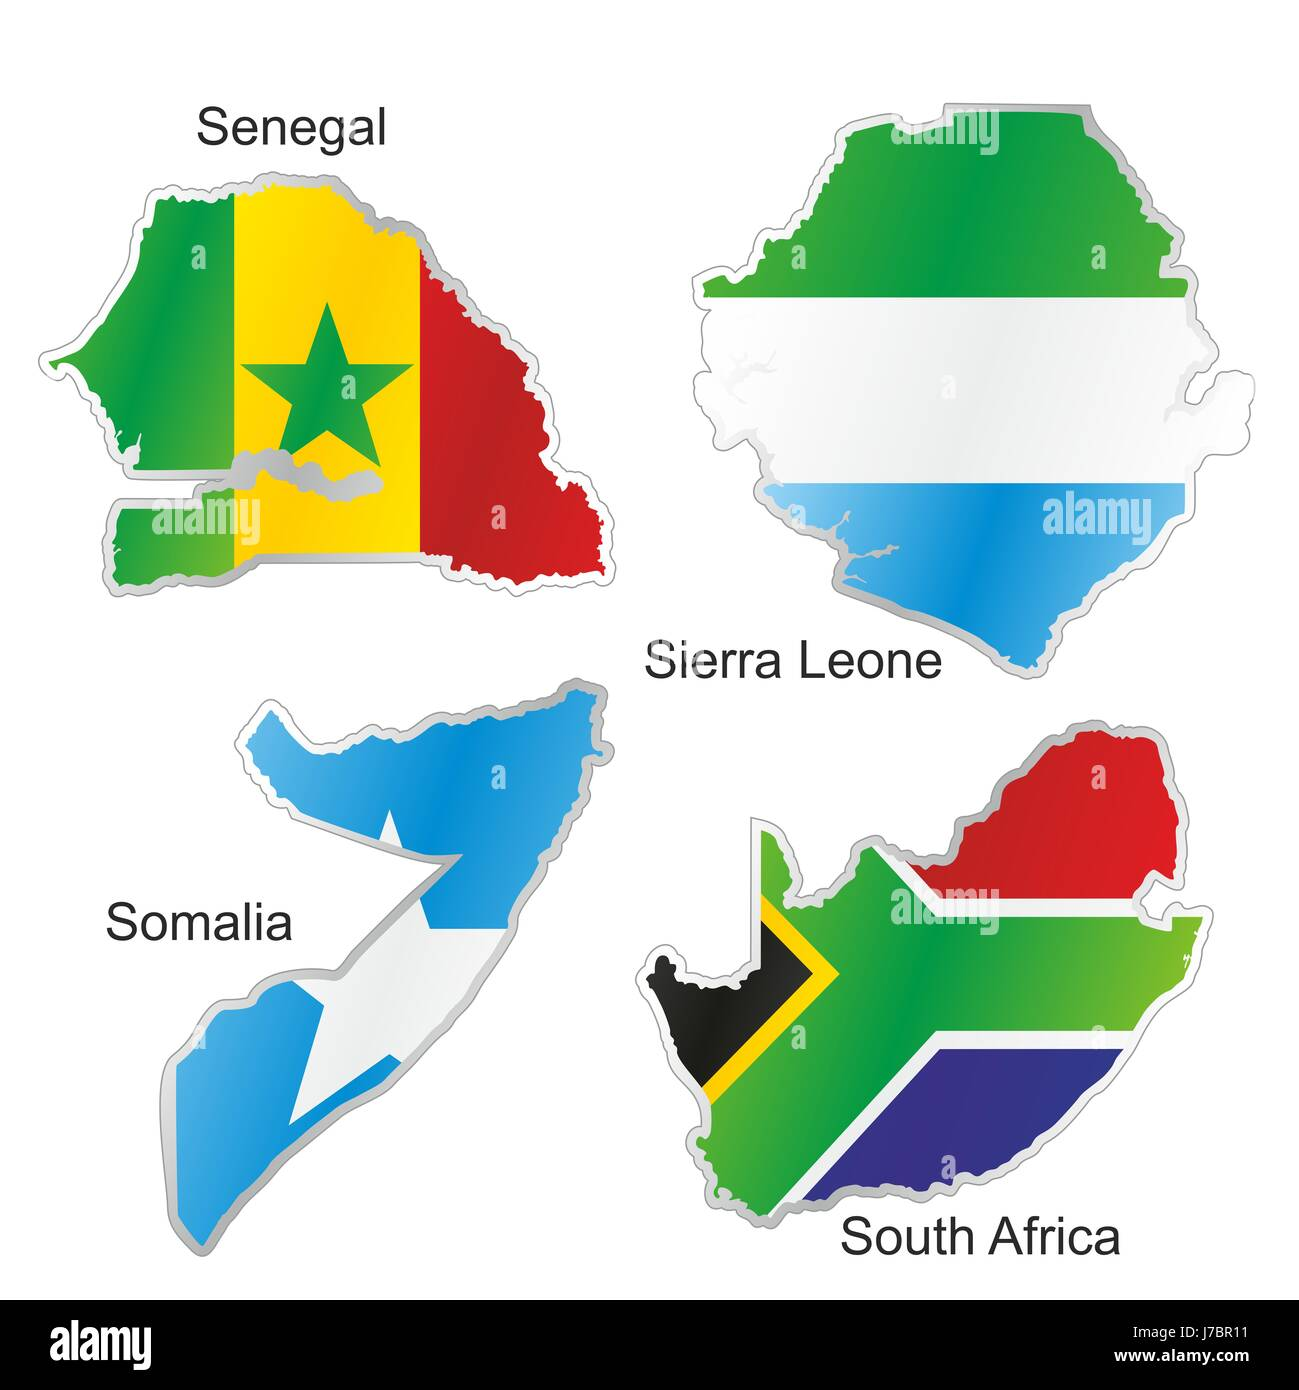 senegal south africa map